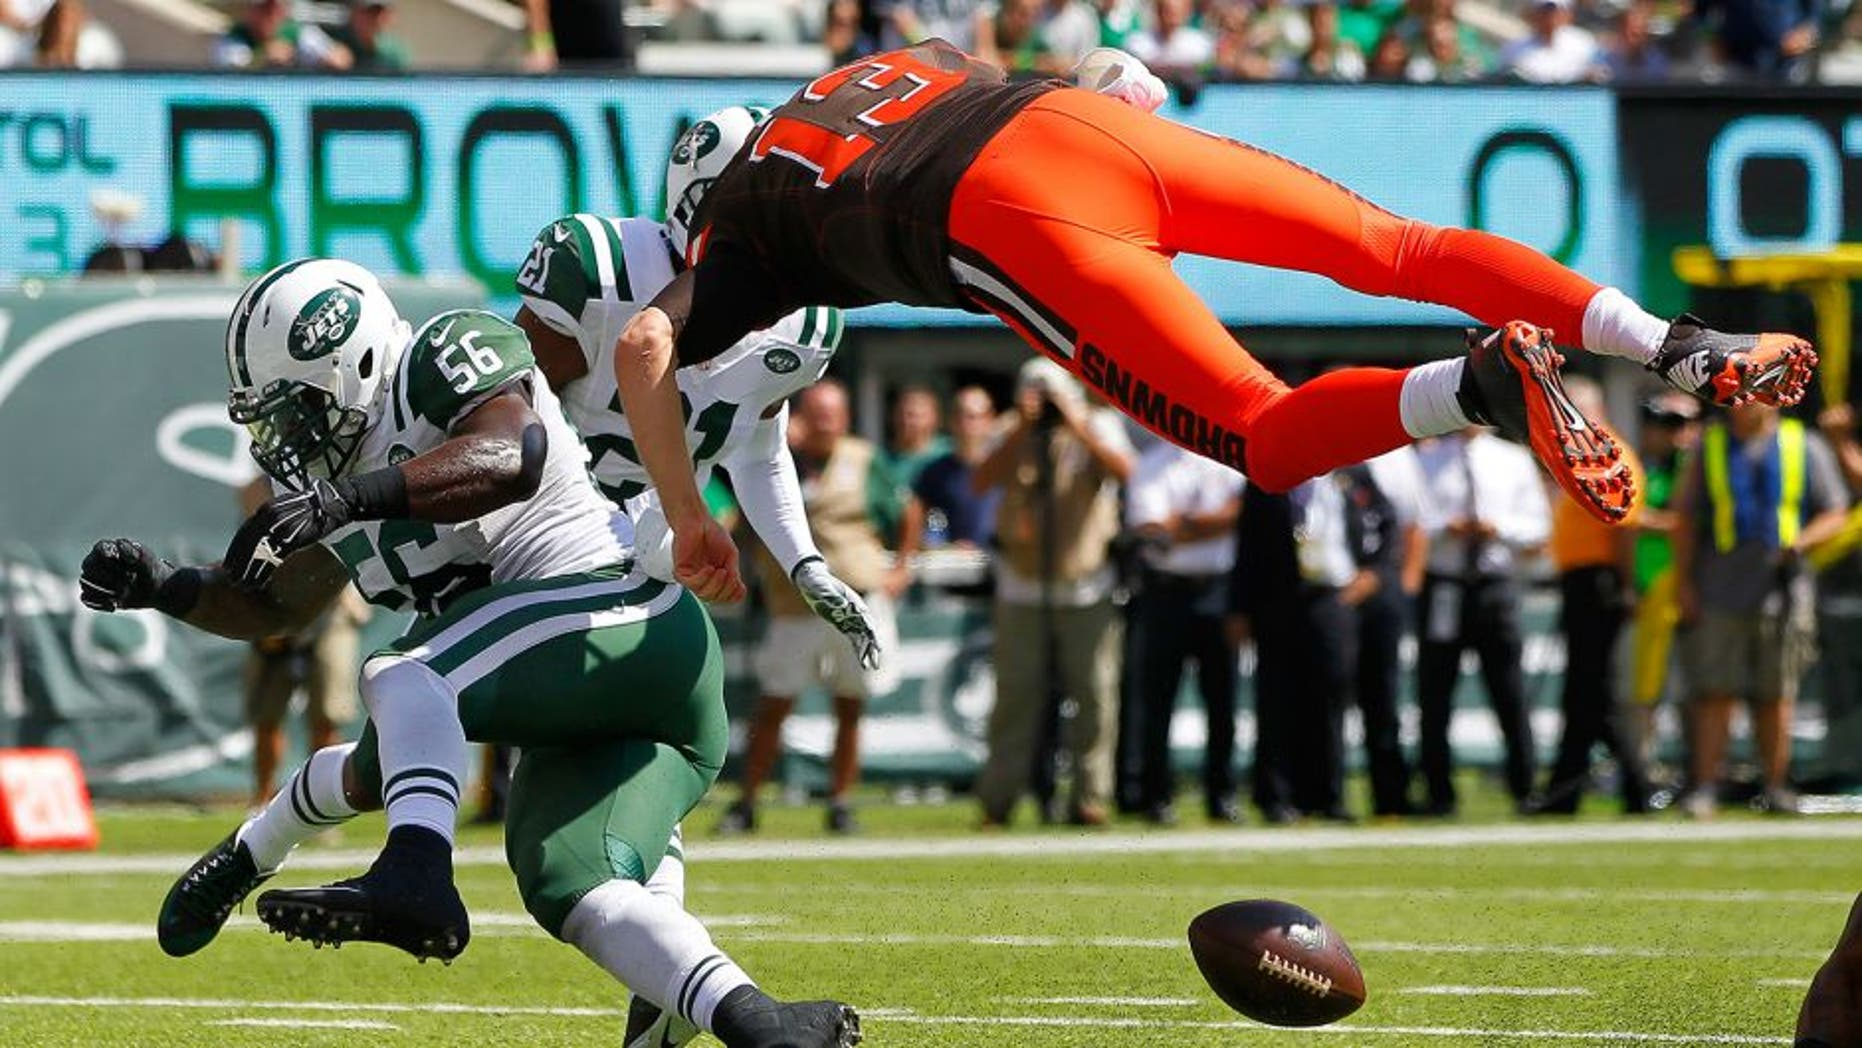 EAST RUTHERFORD, NJ - SEPTEMBER 13: Quarterback Josh McCown #13 of the Cleveland Browns fumbles at the goal line after being hit by Demario Davis #56 of the New York Jets during the first quarter at MetLife Stadium on September 13, 2015 in East Rutherford, New Jersey. The Jets won 31-10. (Photo by Rich Schultz /Getty Images)